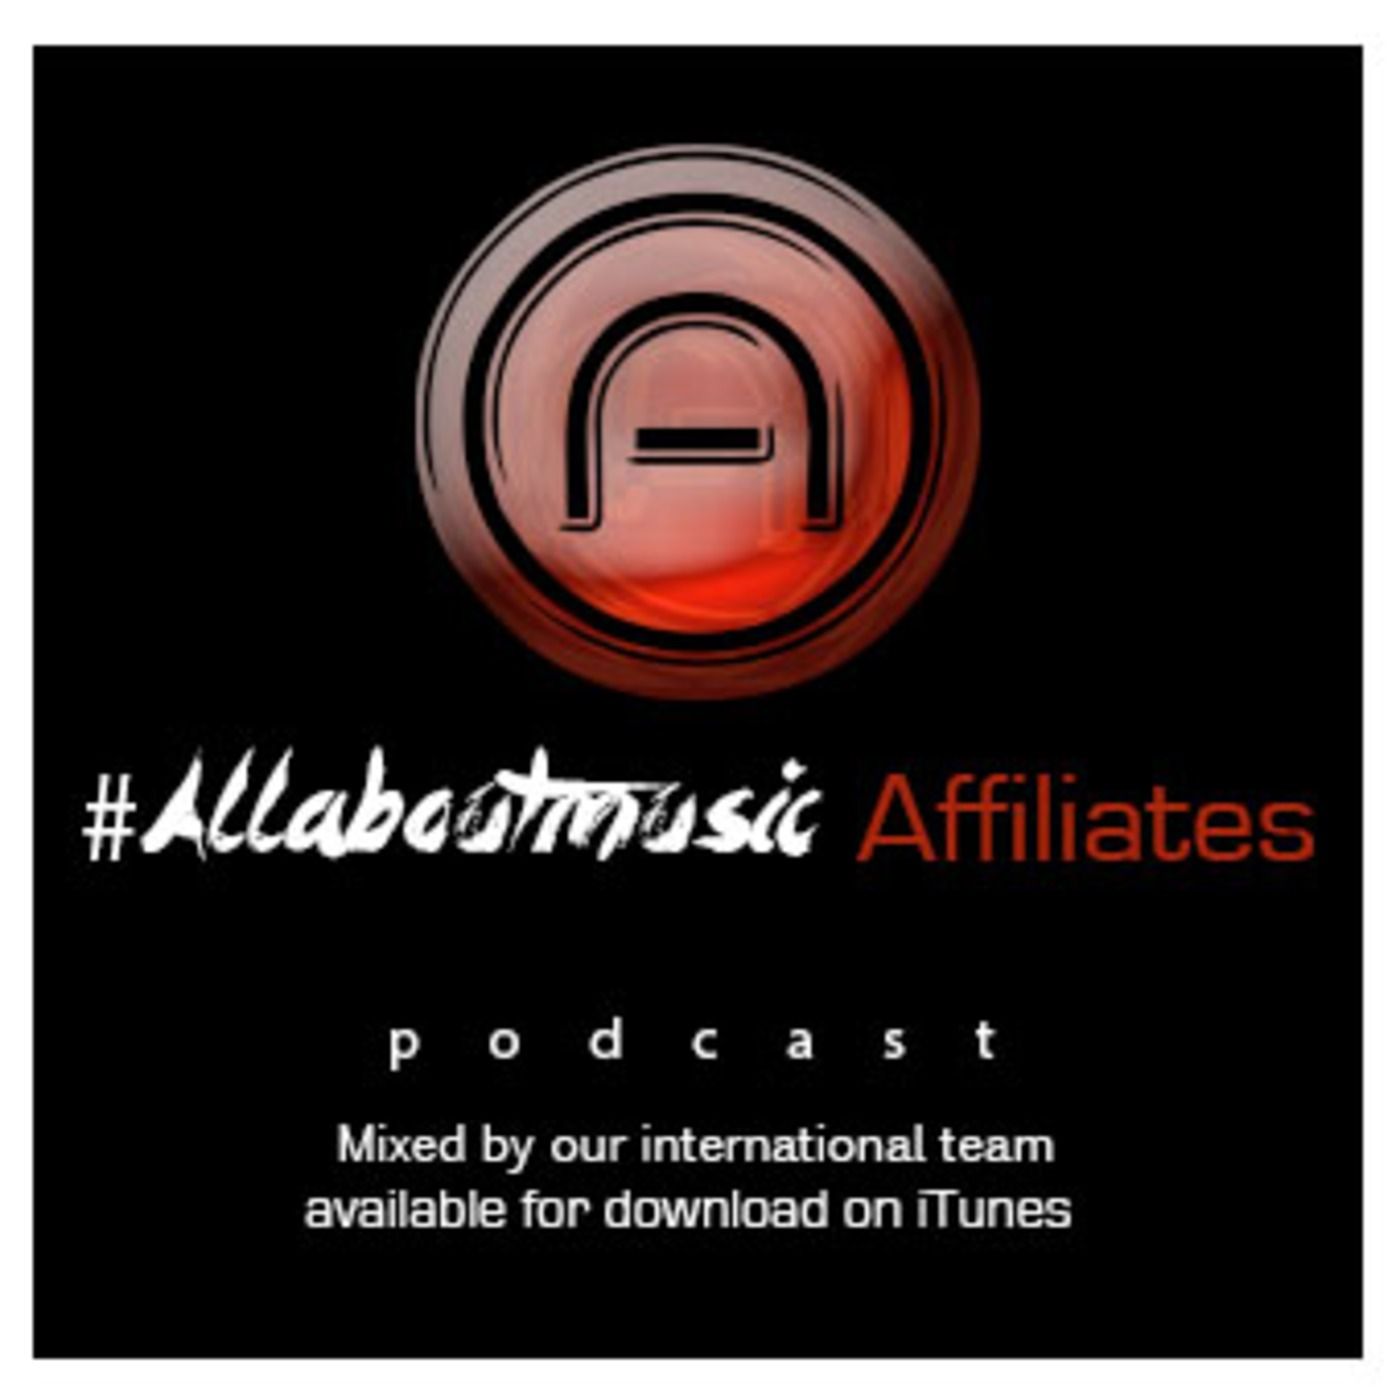 Allaboutmusic Affiliates' Podcast